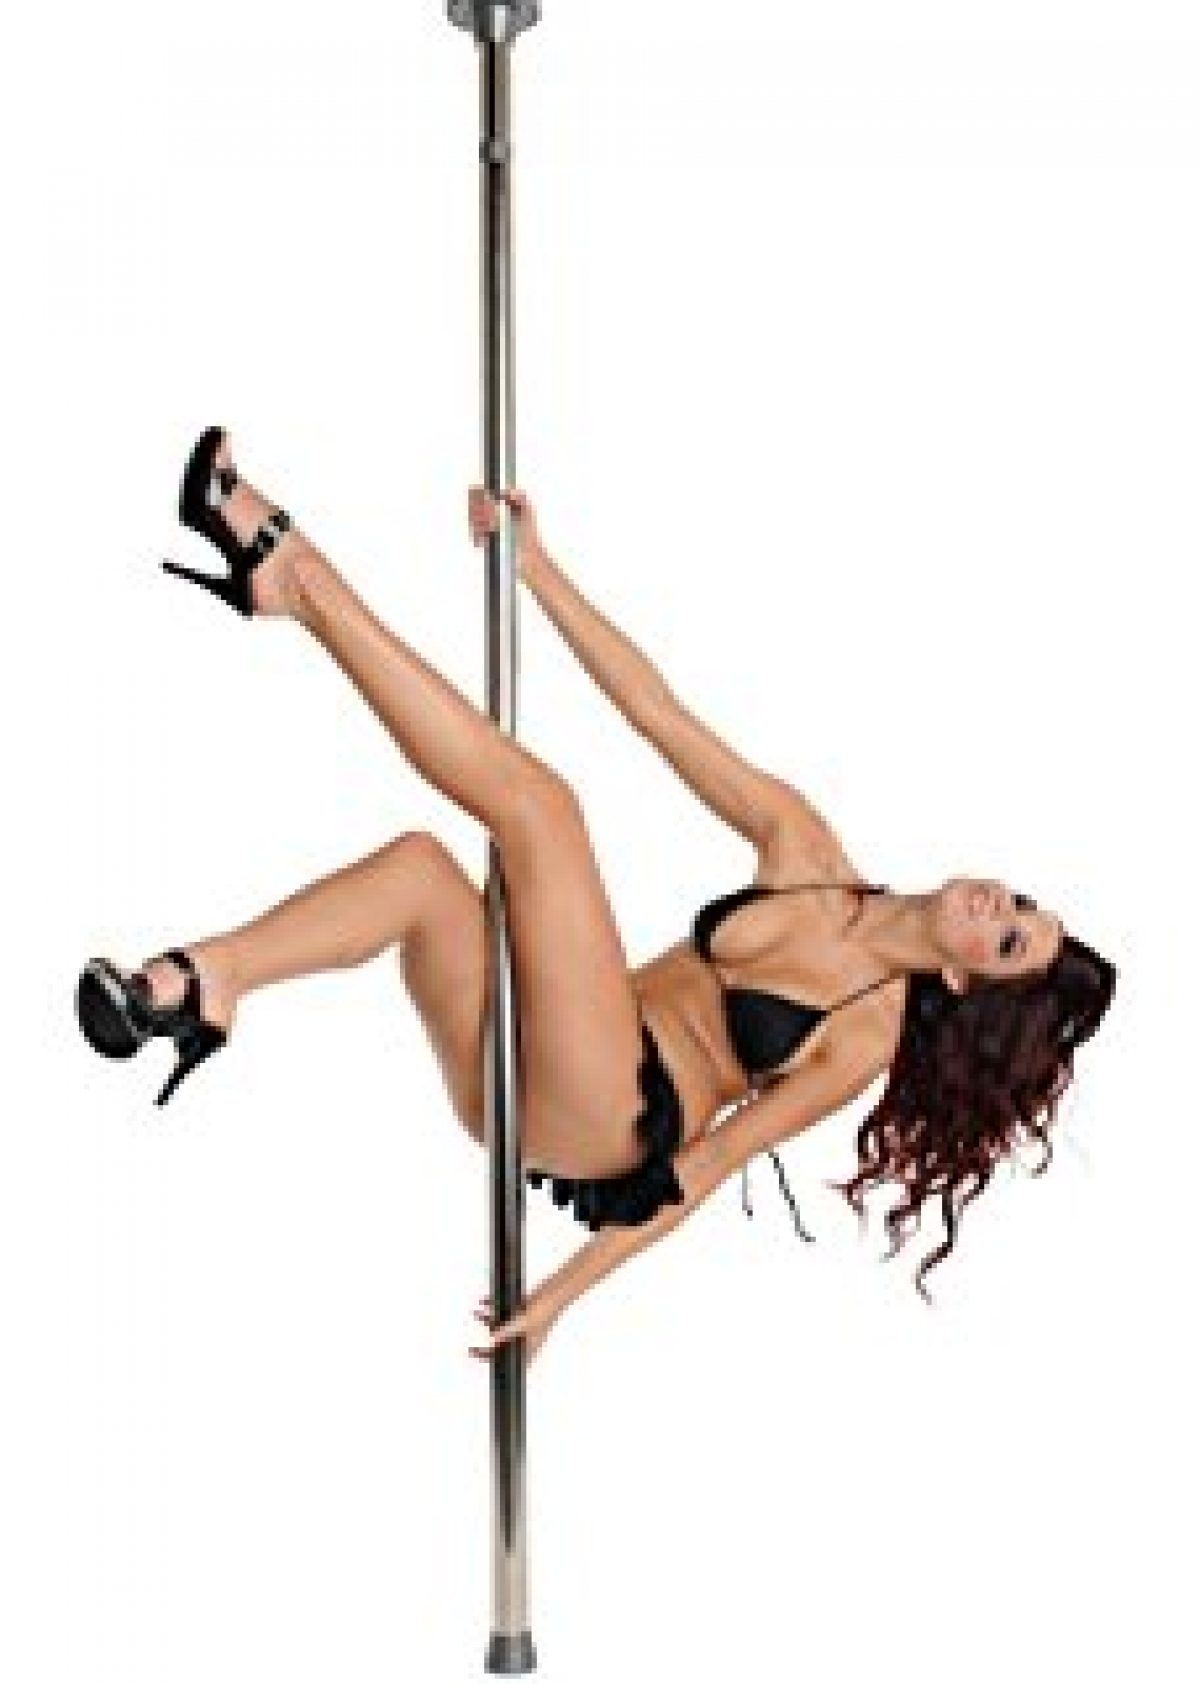 MegaBrand Portable Spinning Stripper Pole Review